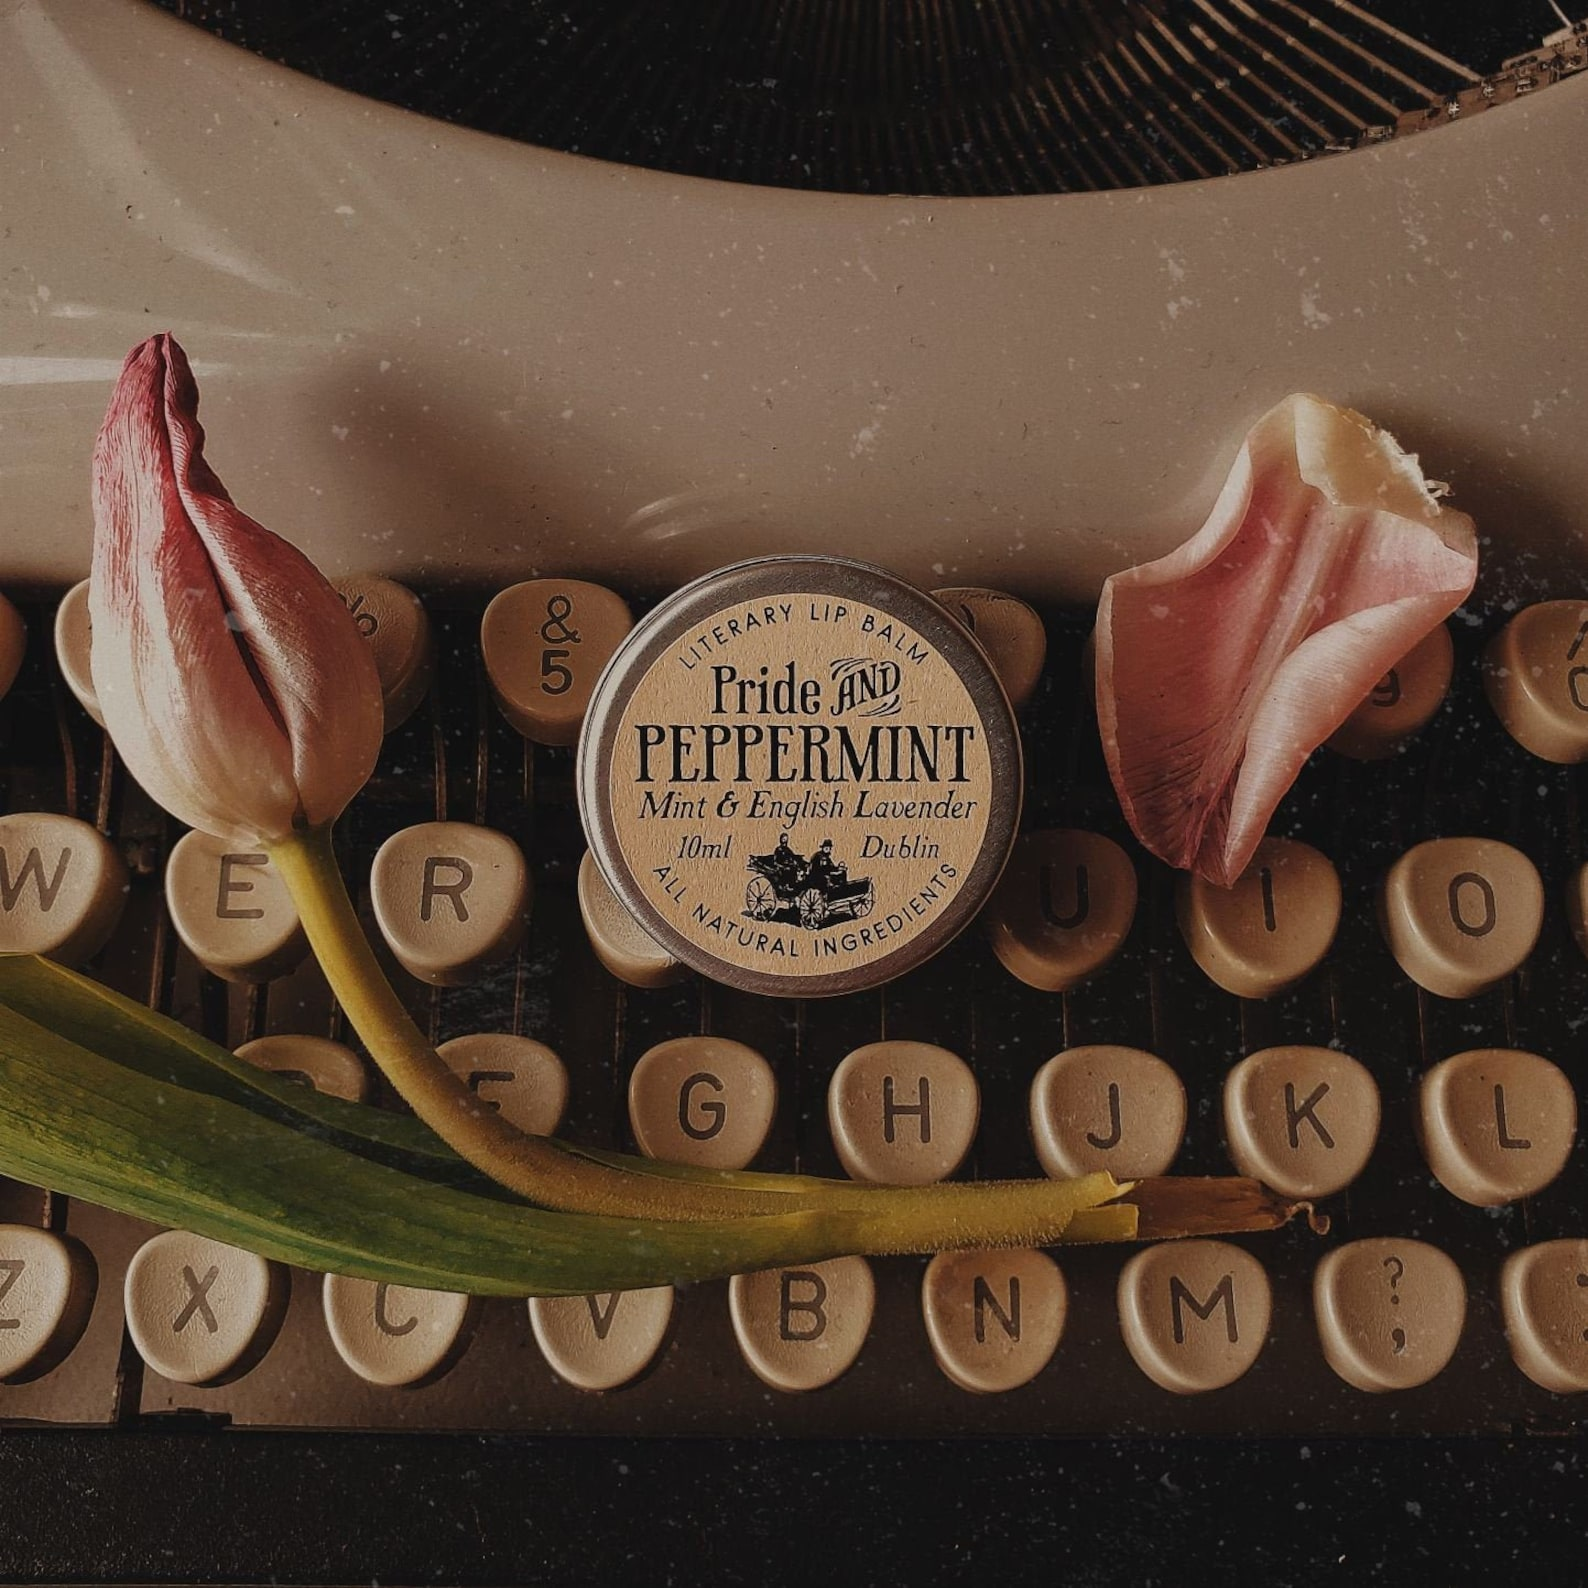 Pride and peppermint lip balm on top of older style typewriter with flower petals